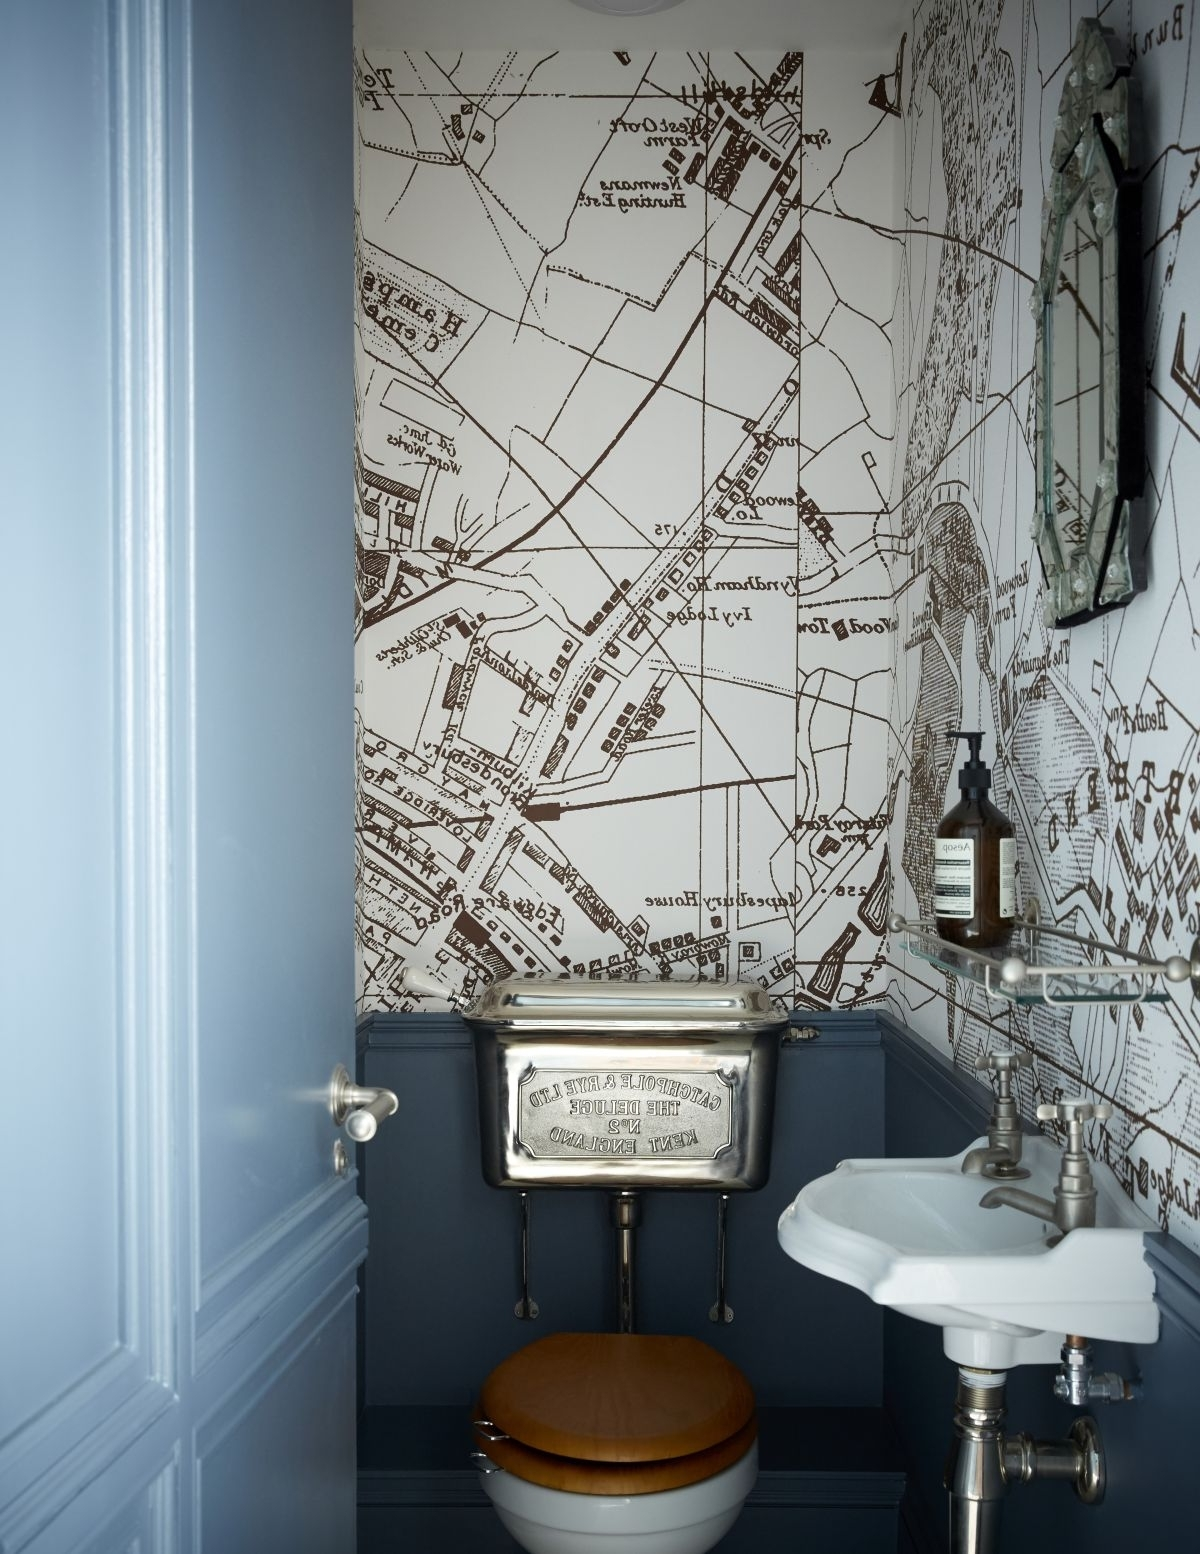 Modern Cloakroom Ideas: Cloakrooms & Powder Rooms Decor 10+ Downstairs Bathroom Wallpaper Inspirations